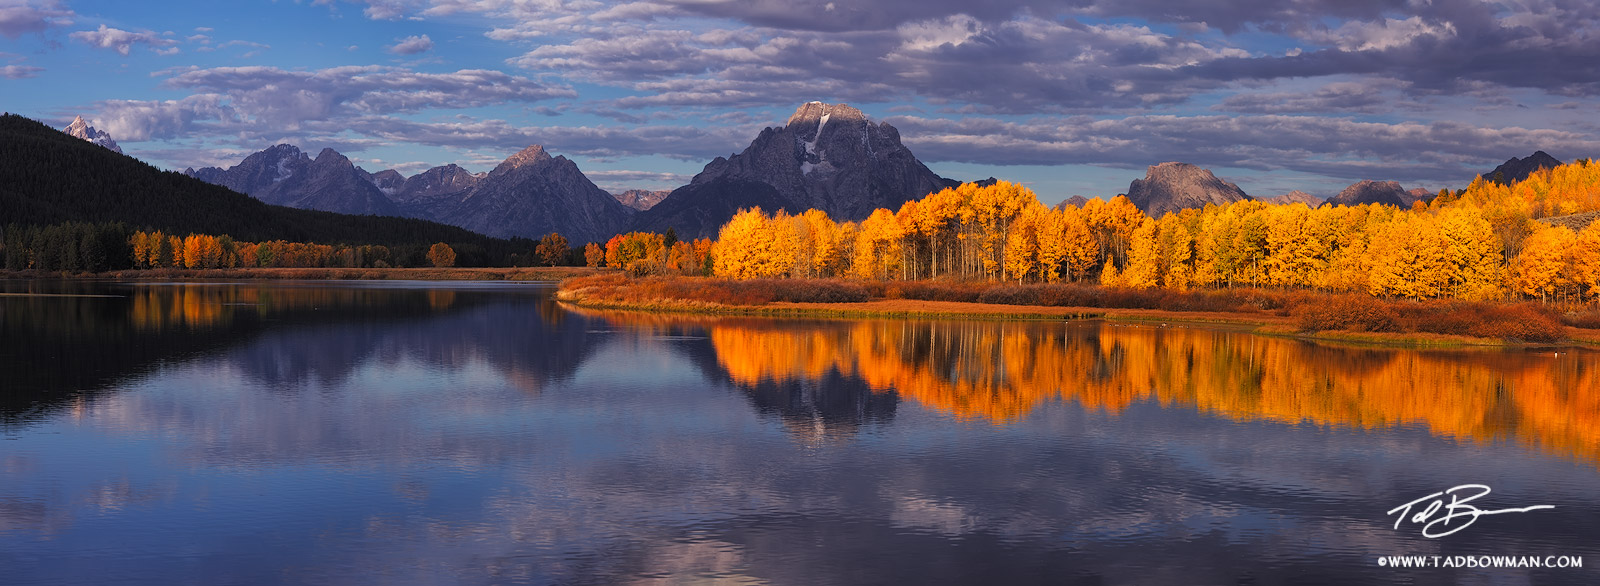 Wyoming, Oxbow Bend photos,mountain images,Fall colors,grand teton pictures,Autum picture,Gold Aspen tree,Grand Tetons Photos,Grand Teton National Park photographs,fall photos,reflection,reflections, photo